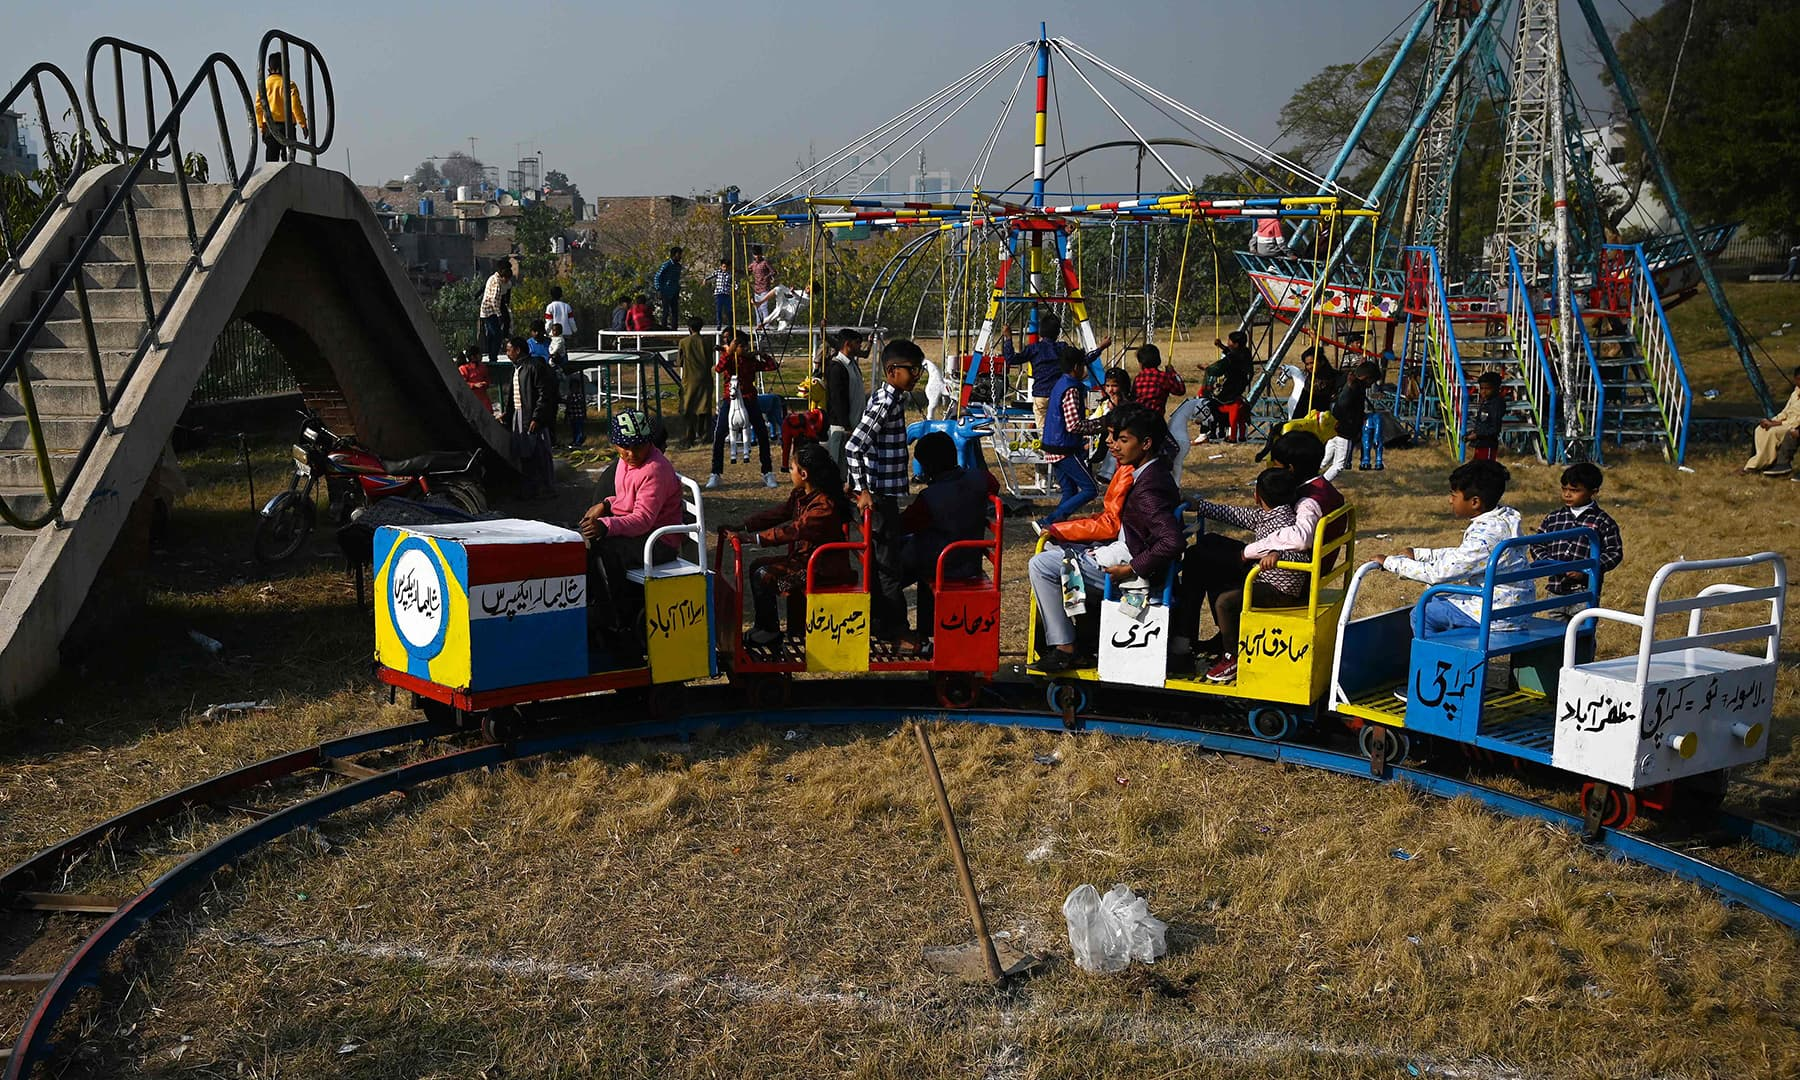 Children ride on a toy train on Christmas Day in Islamabad on December 25. — AFP